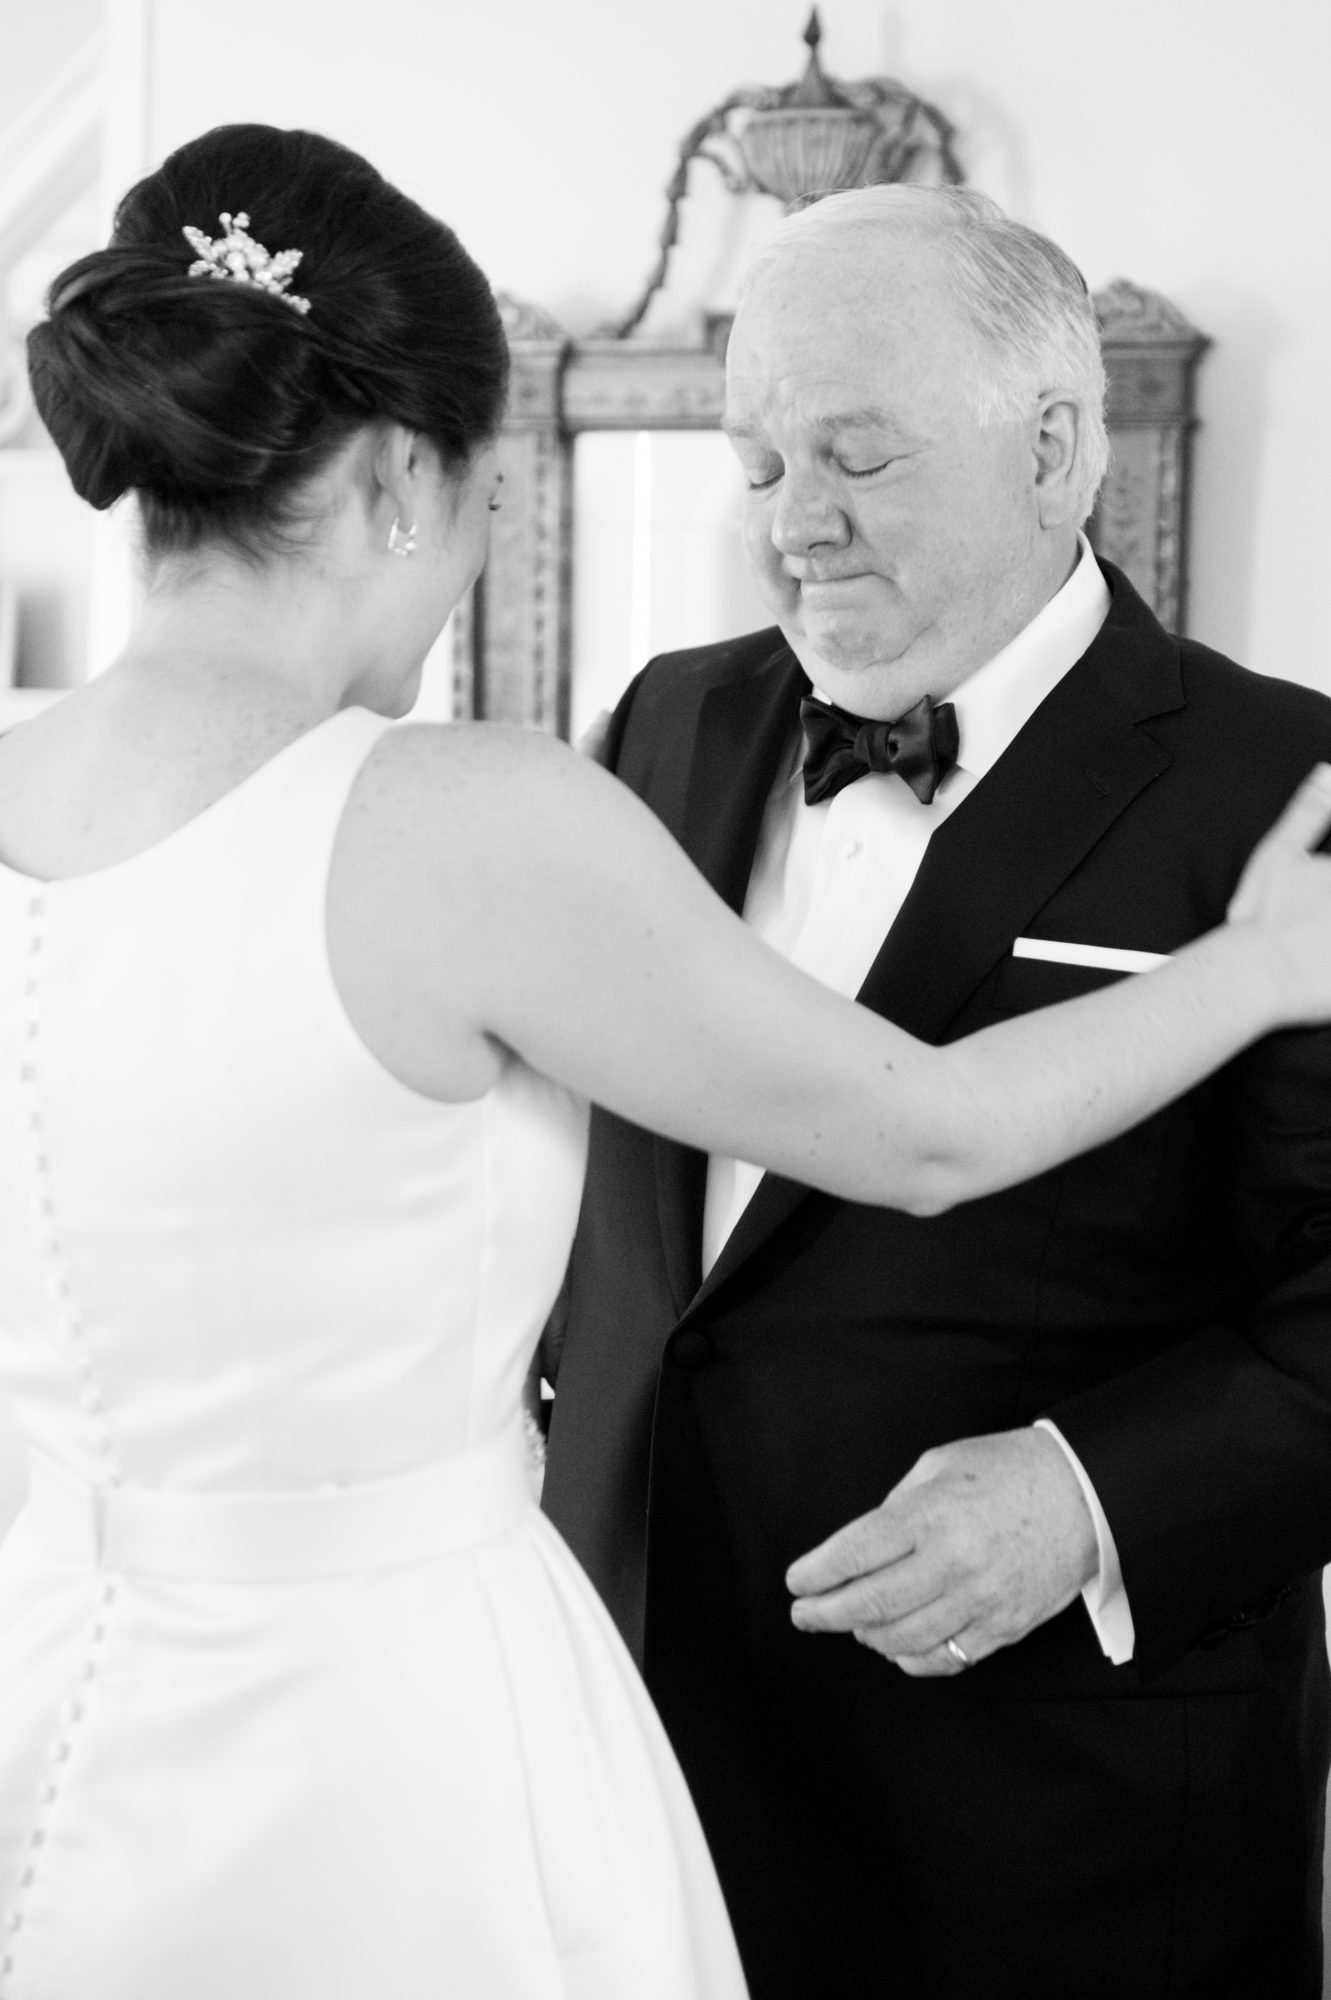 black white wedding image father daughter moment